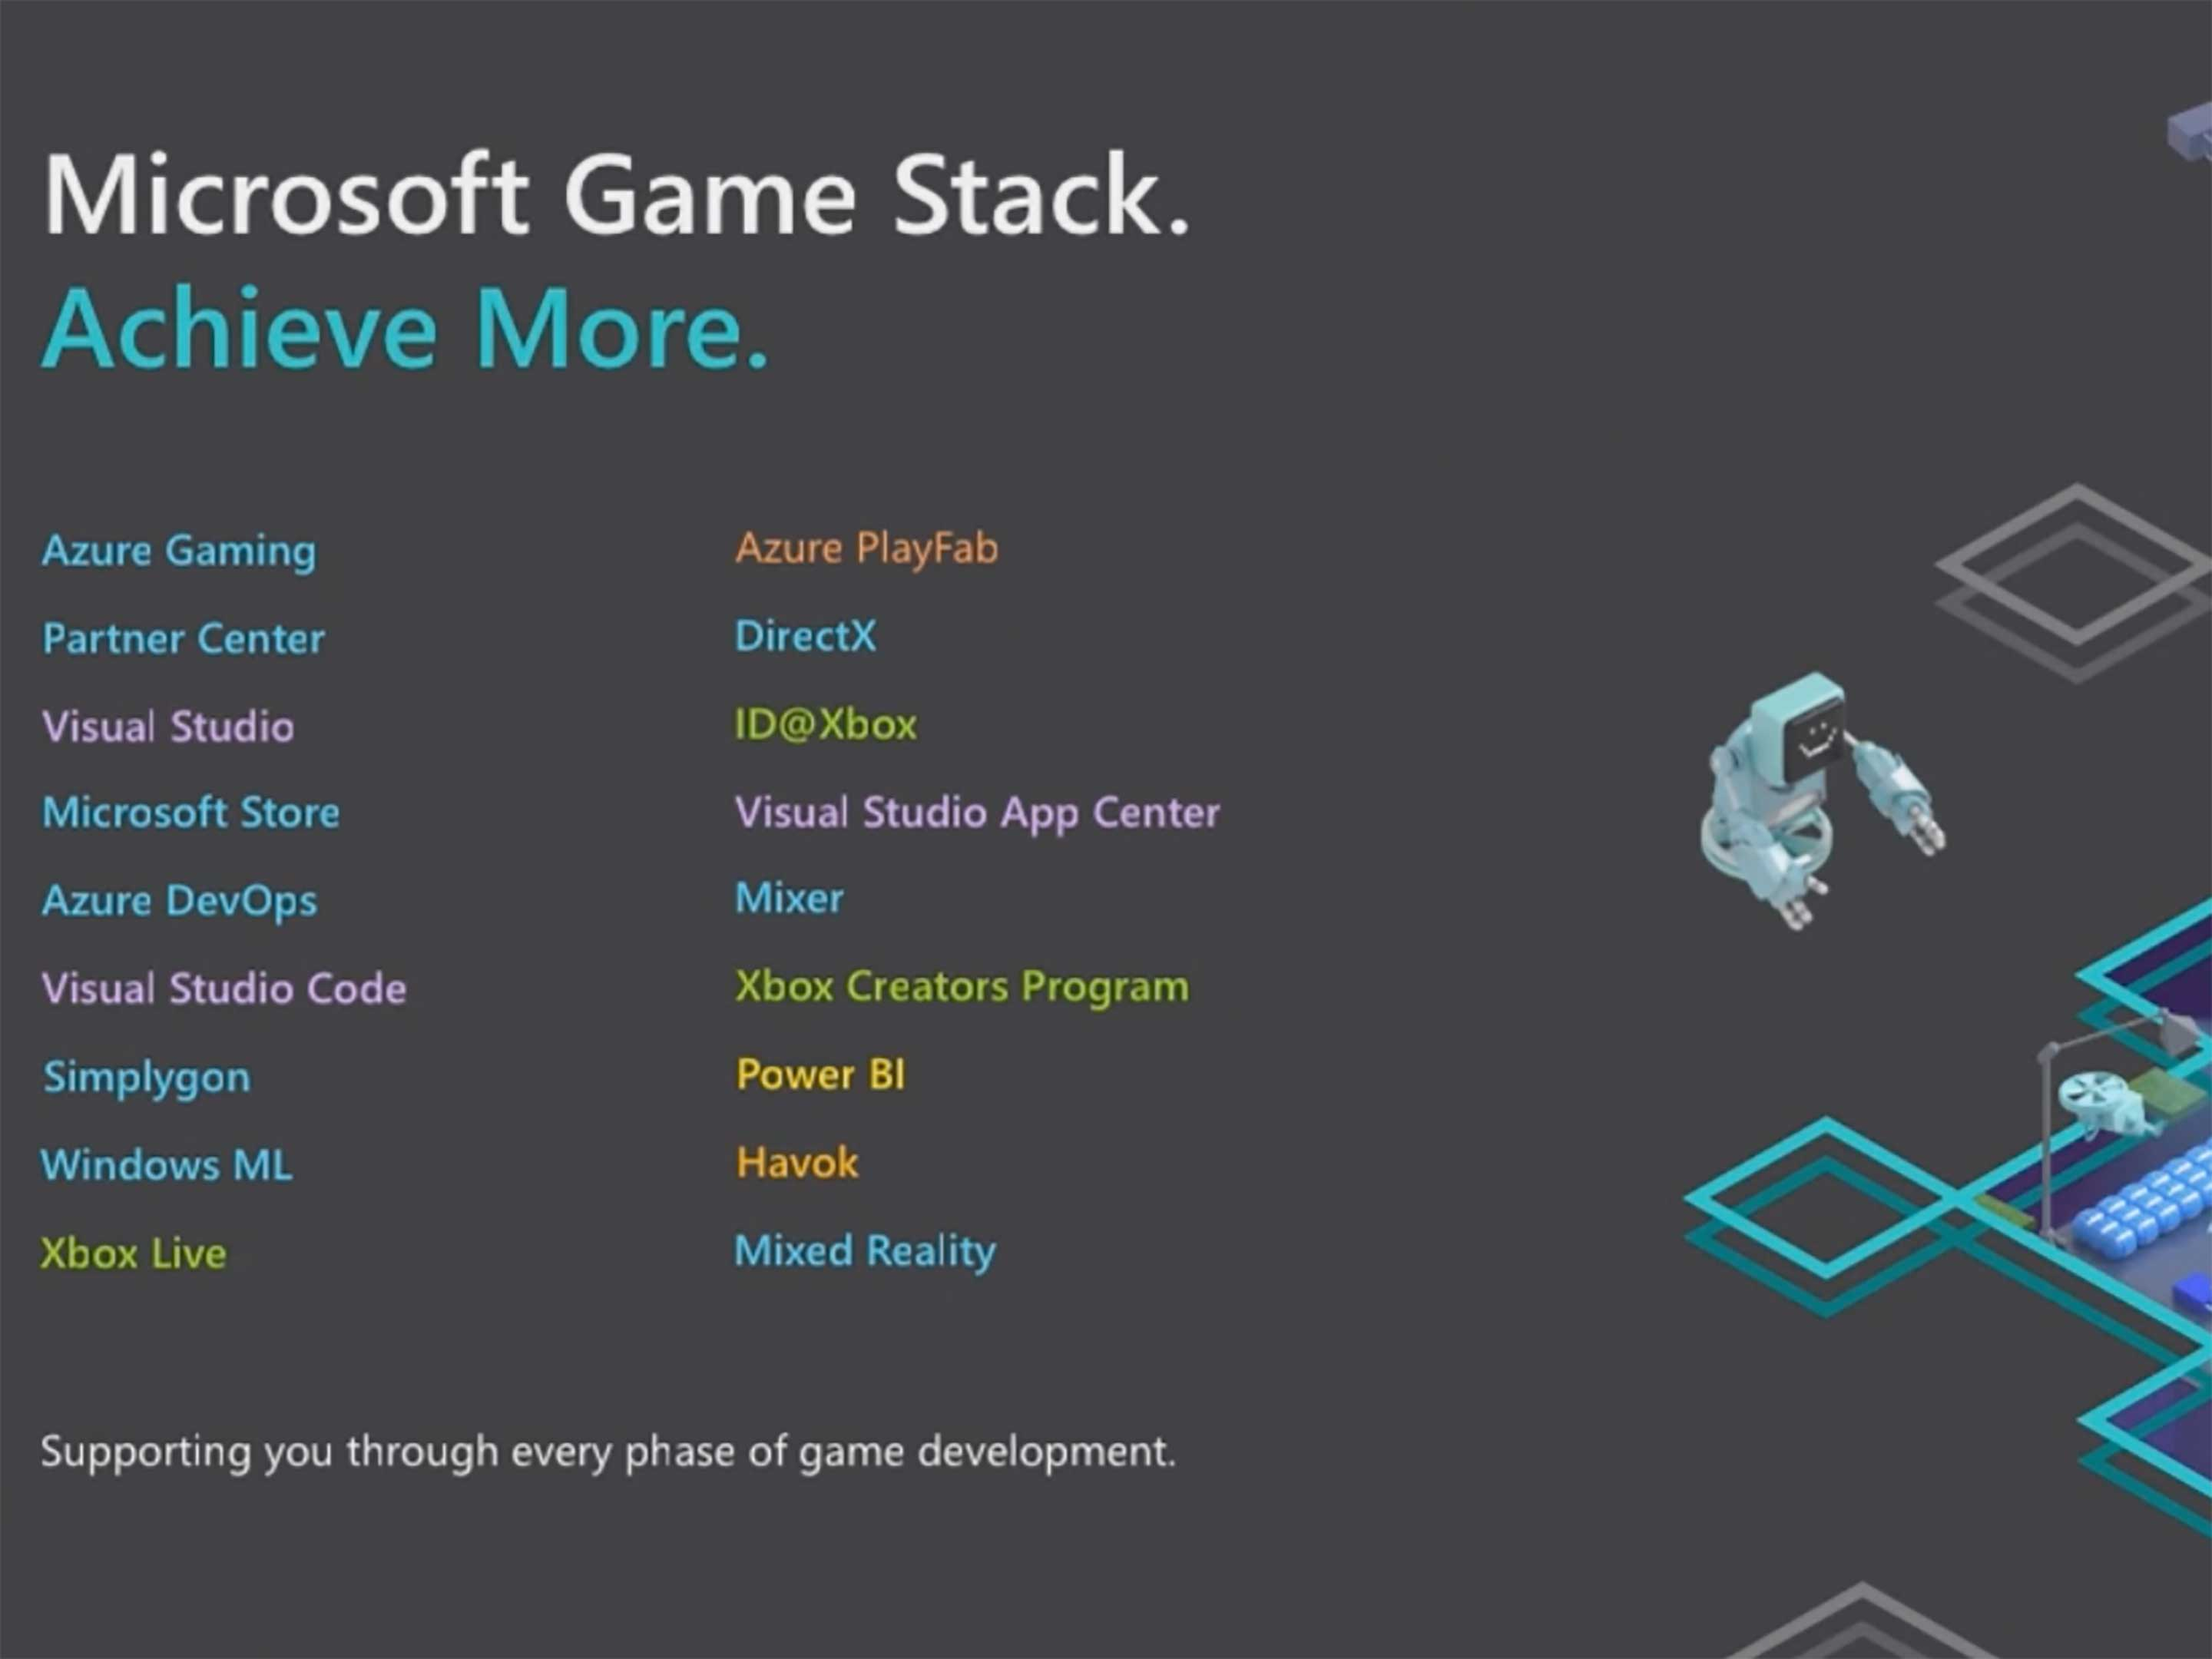 Microsoft Game Stack services